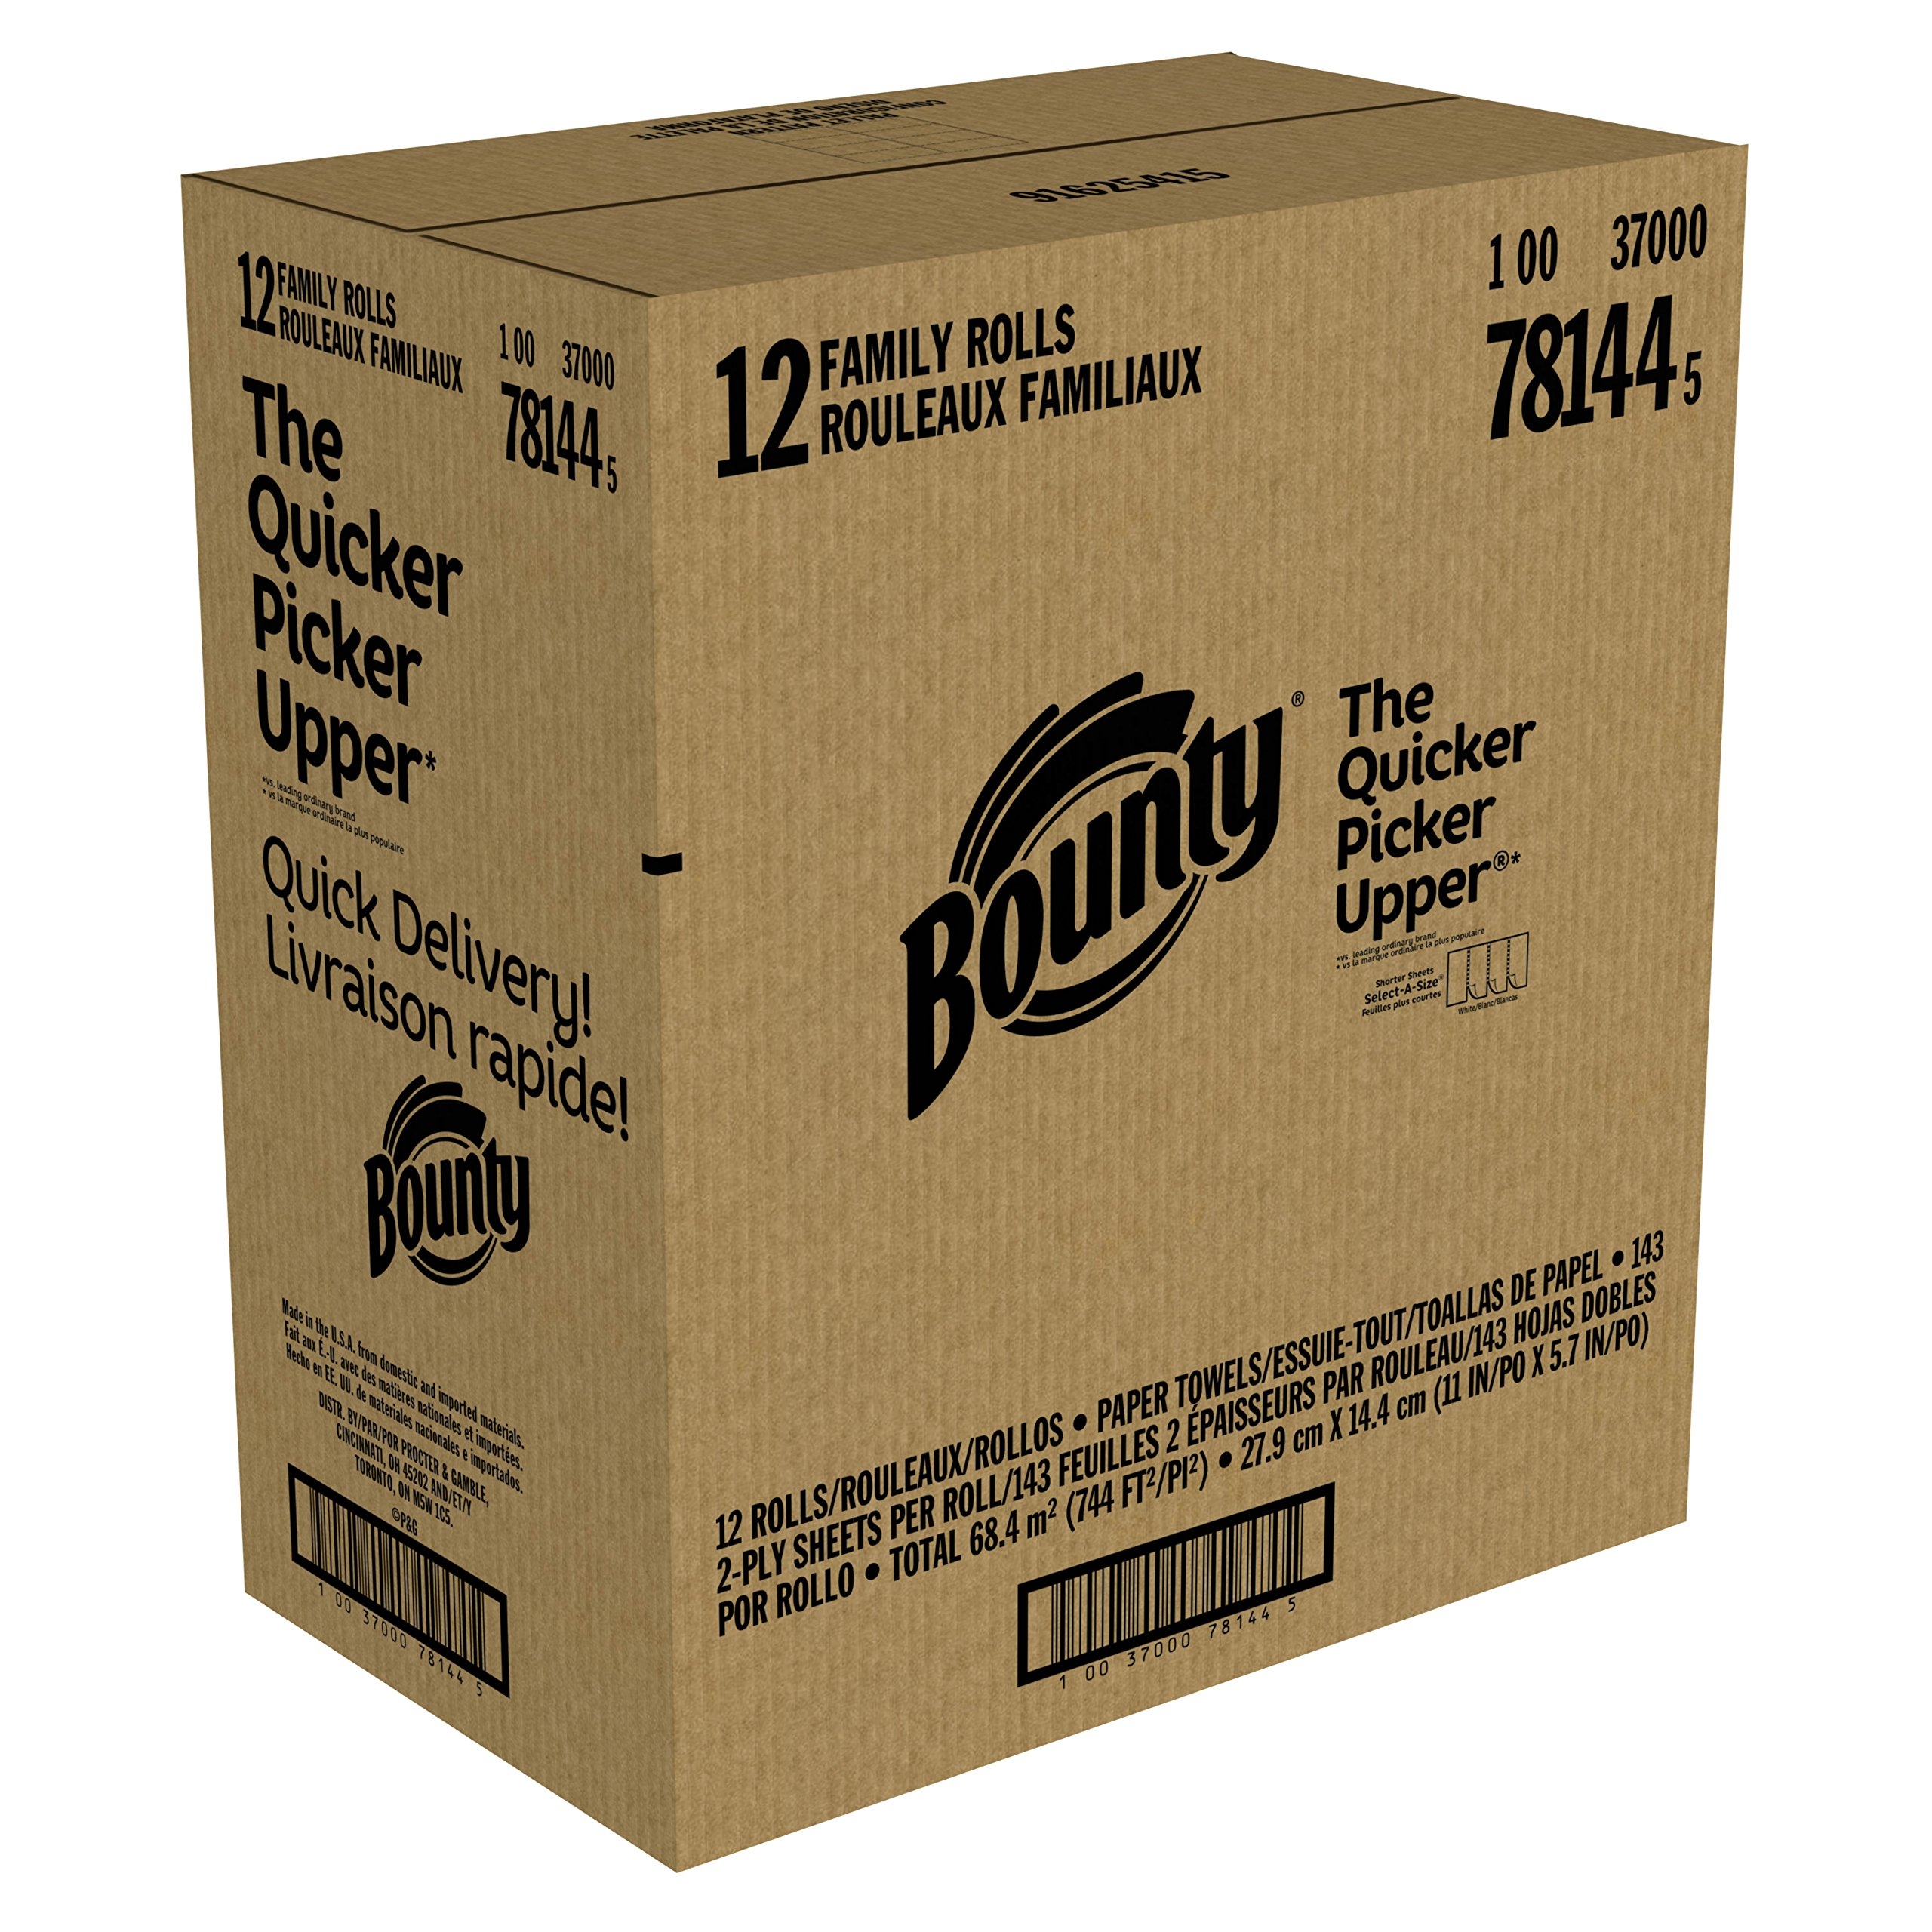 Bounty Quick-Size Paper Towels, White, Family Rolls, 12 Count (Equal to 30 Regular Rolls) by Bounty (Image #7)